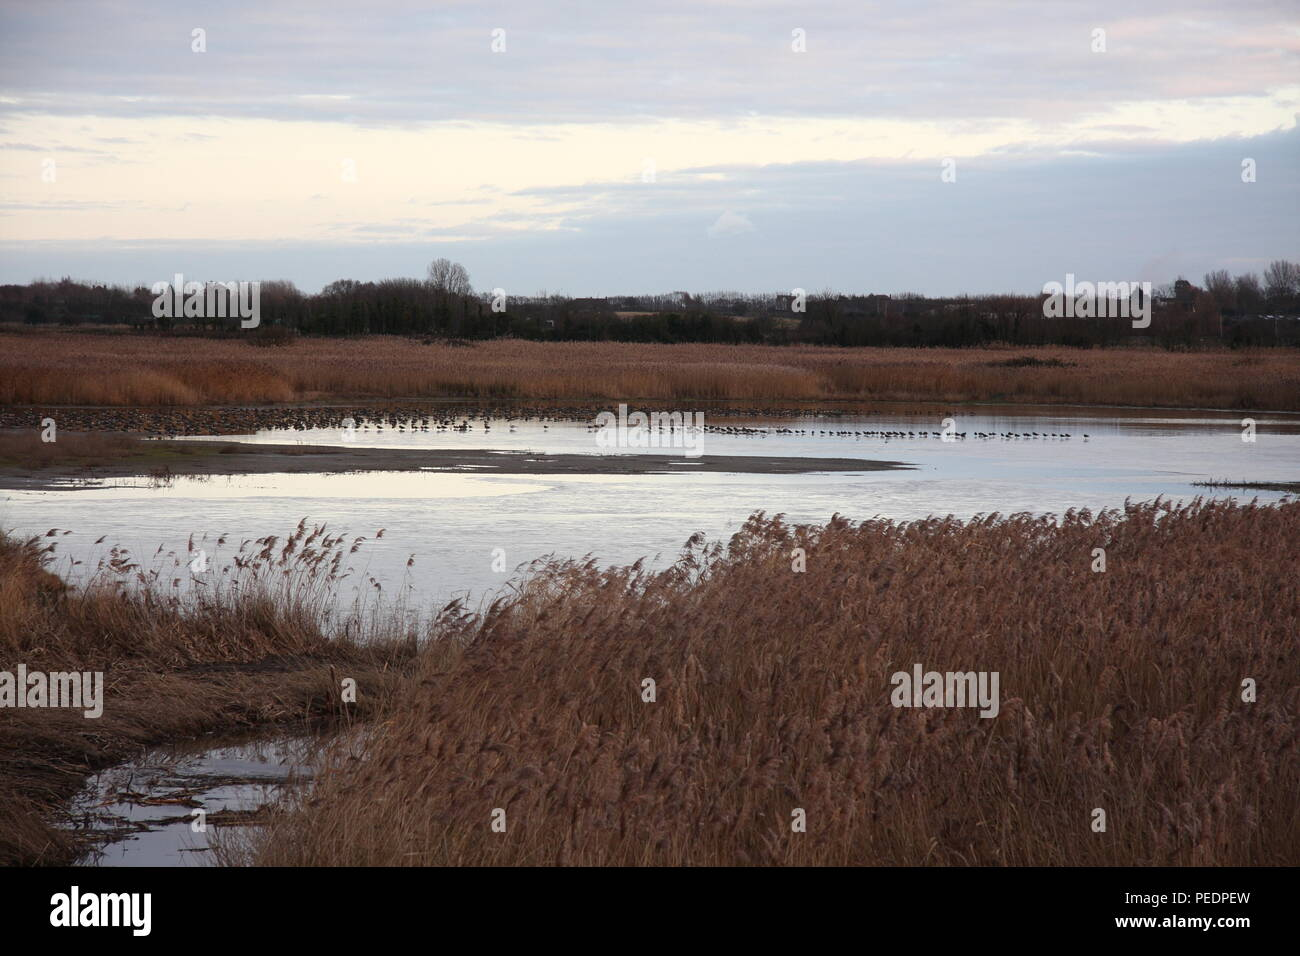 Grove, the mound in Stodmarsh nature reserve, a reed bed landscape that is a favoured birding spot in Kent, you can see birds resting in background. - Stock Image